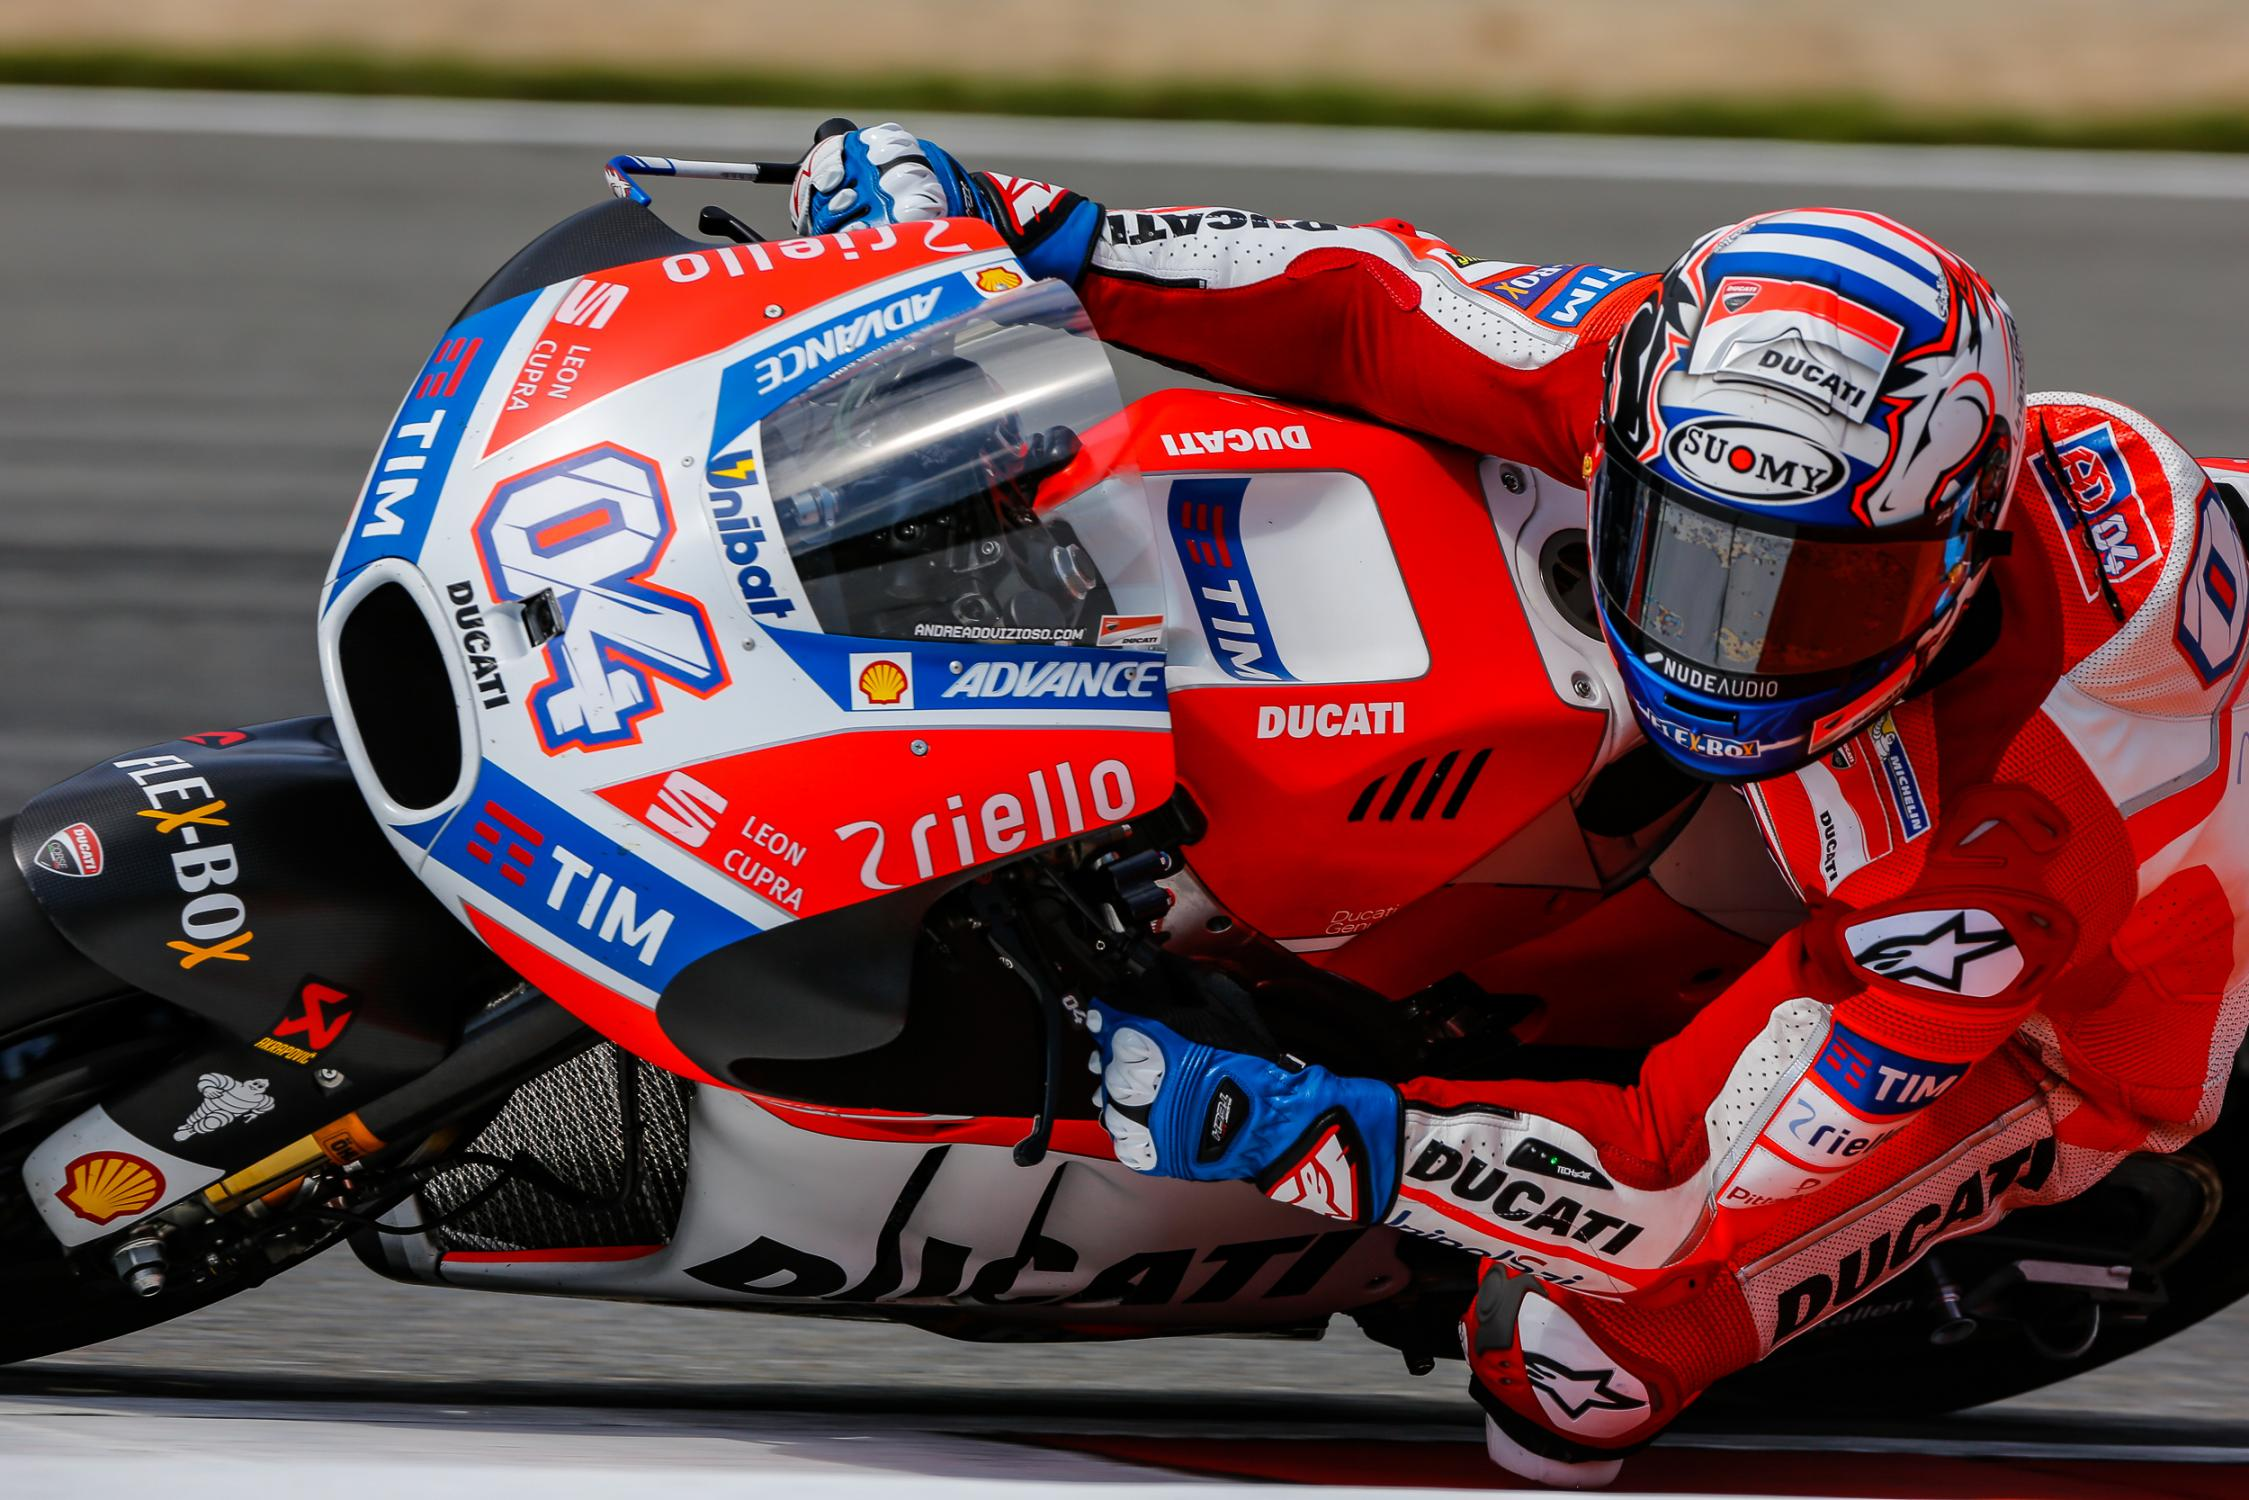 04-andrea-dovizioso-ita_gp_6176.gallery_full_top_fullscreen.jpg